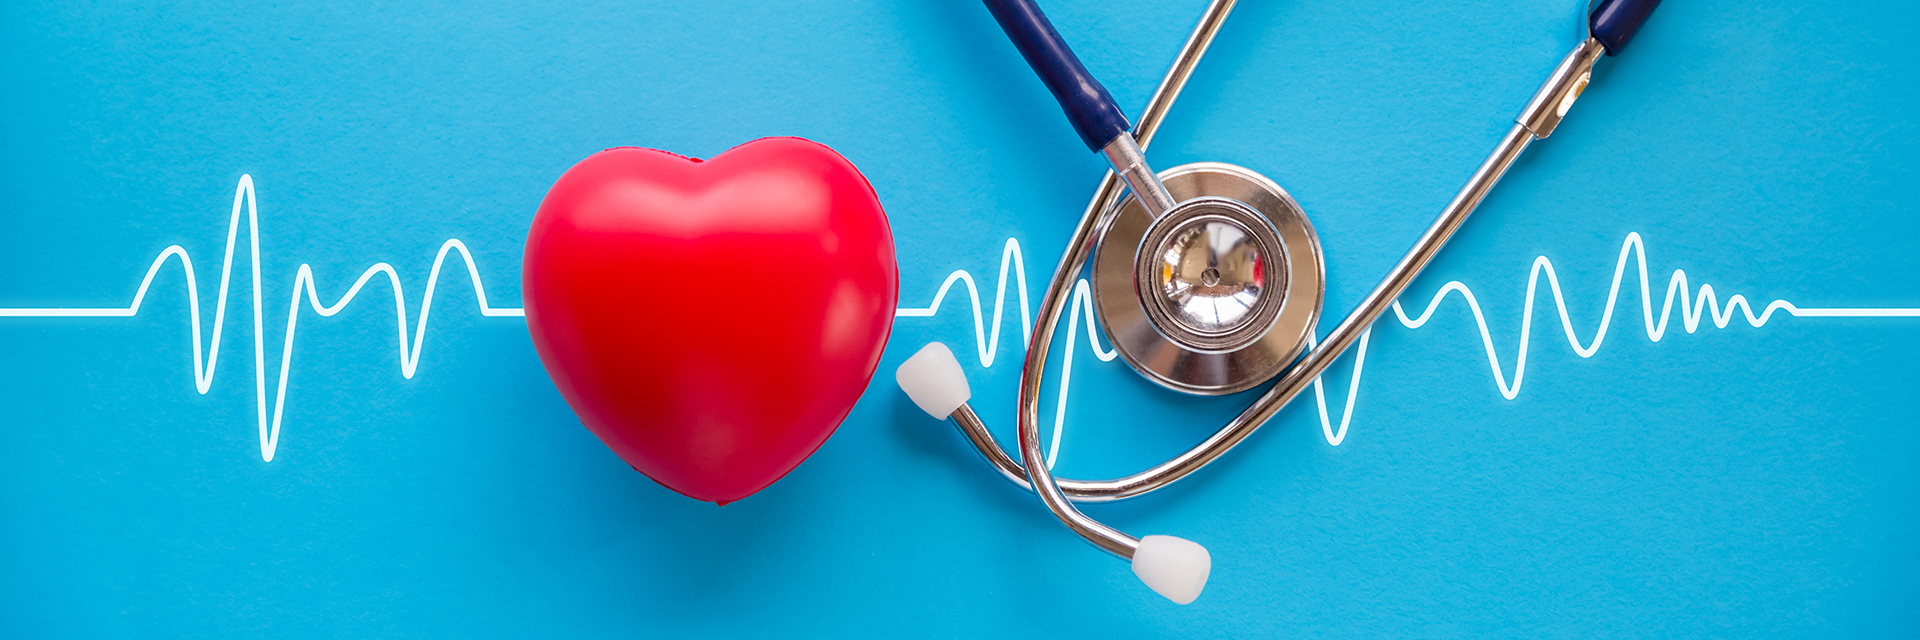 How Hearing Loss and Heart Disease Are Linked | CVH Audiology Blog